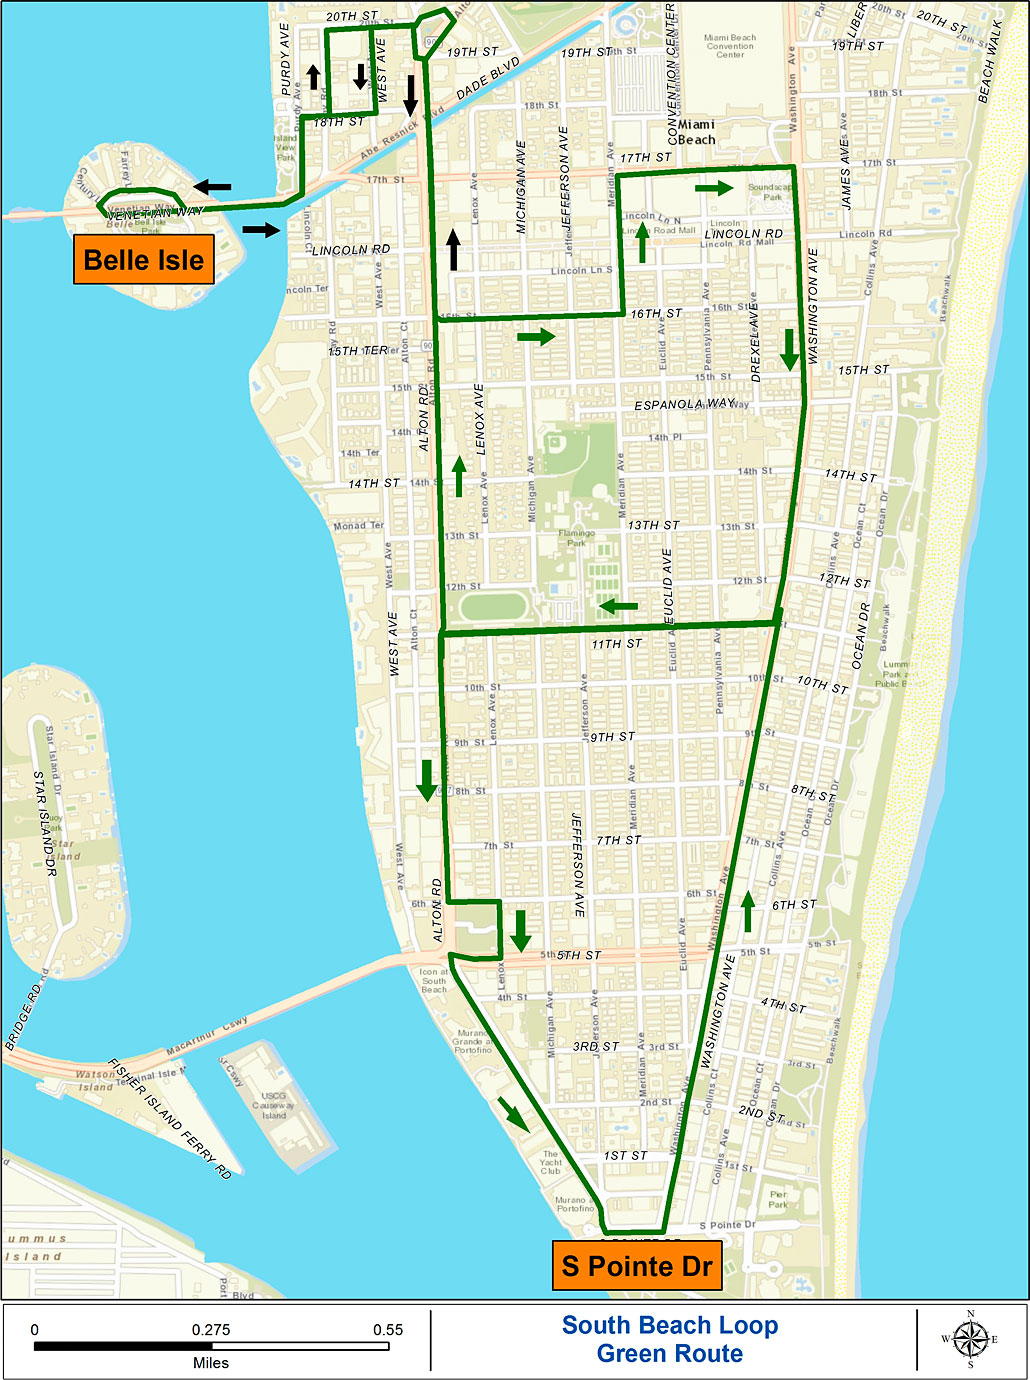 south beach loop green route map. miami beach free trolley service  south beach magazine